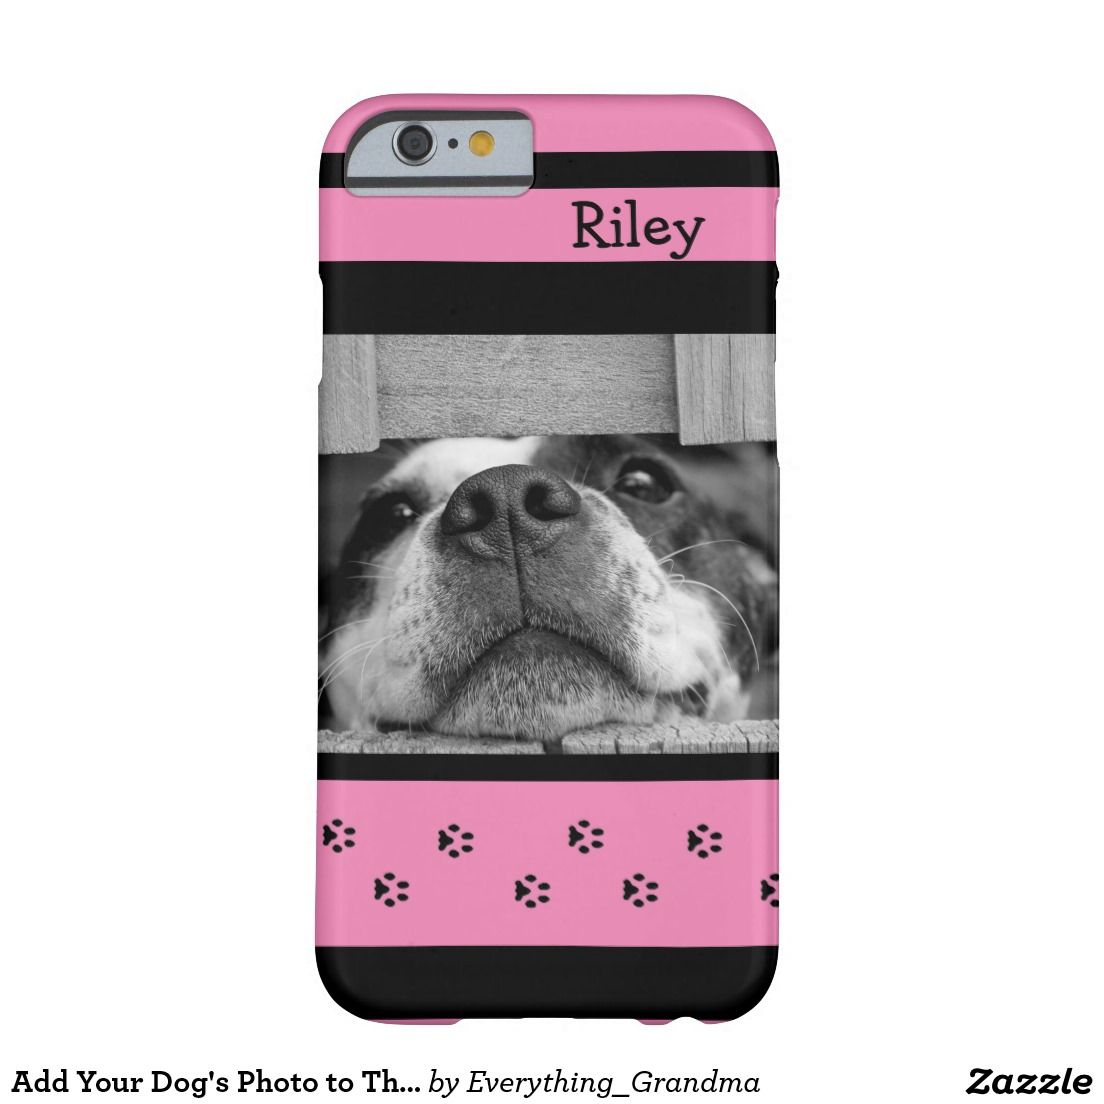 Add Your Dog's Photo to This Phone Case